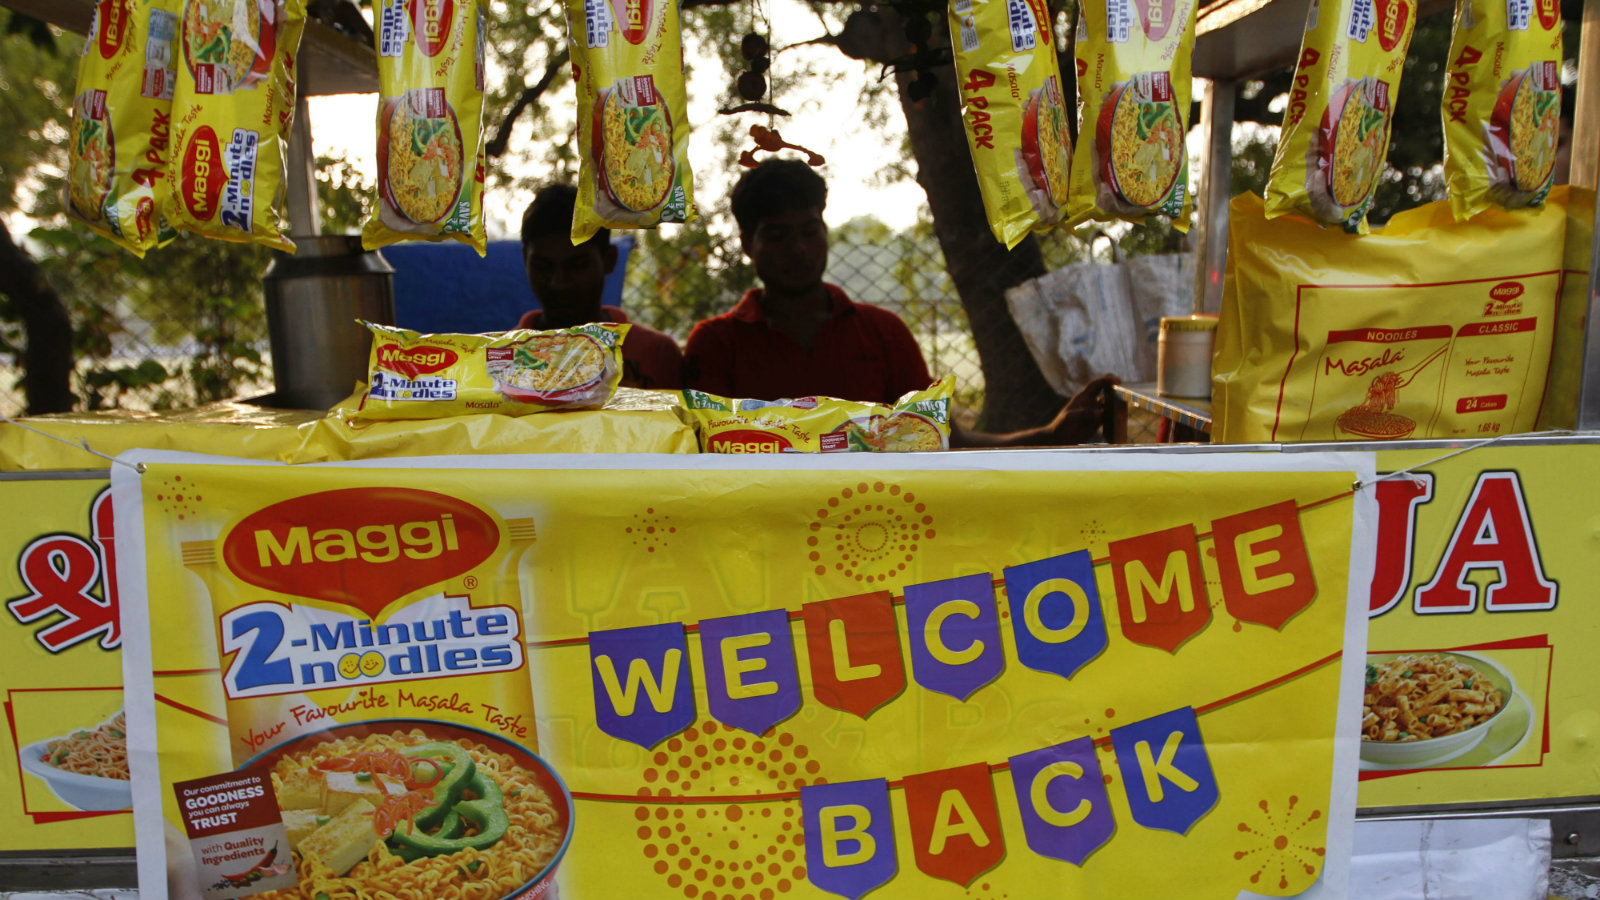 Packets of Maggi noodles hang on display at a roadside stall in Ahmadabad, India, Monday, Nov. 9, 2015. Maggi noodles are back on shelves in India five months after the popular snack was found to contain lead above permissible limits.